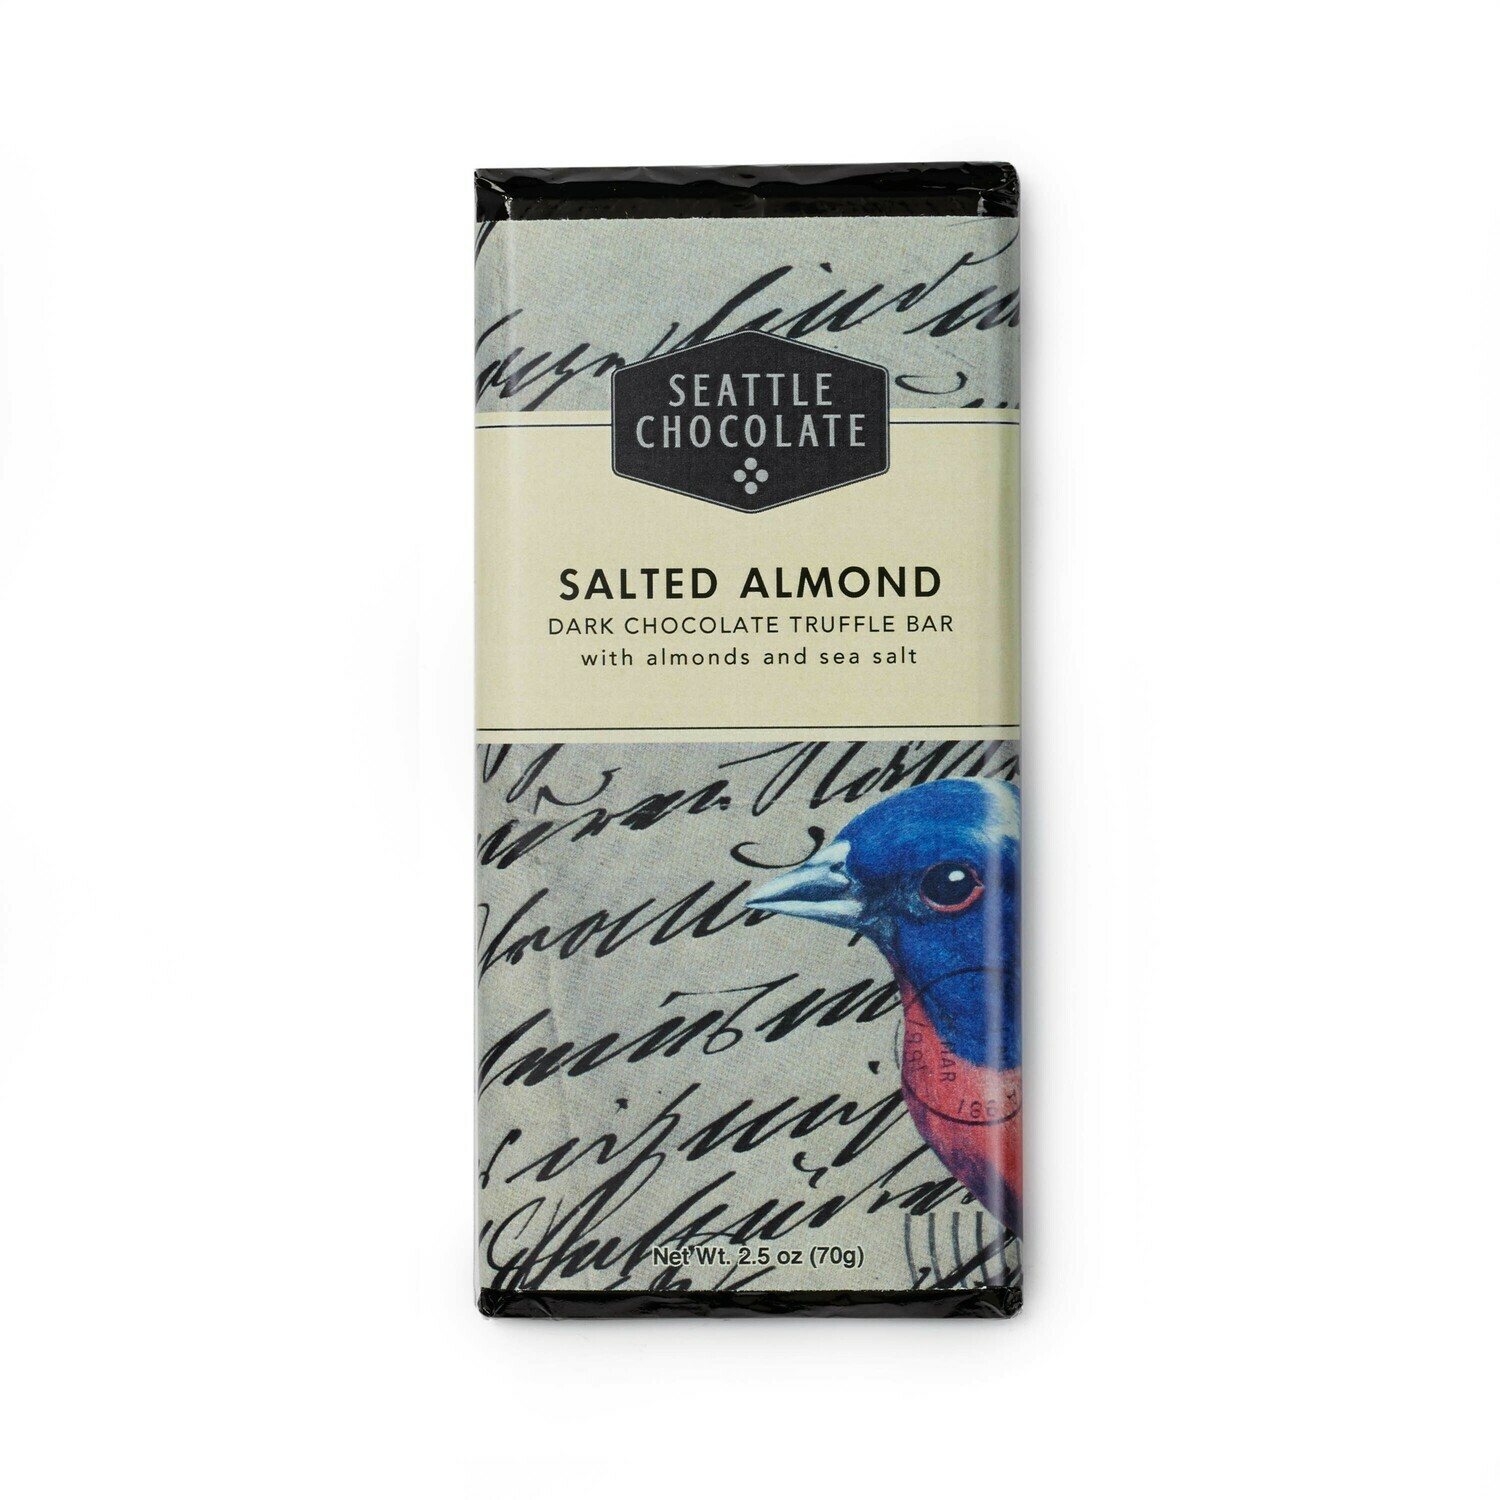 Salted Almond Seattle Chocolate Bar